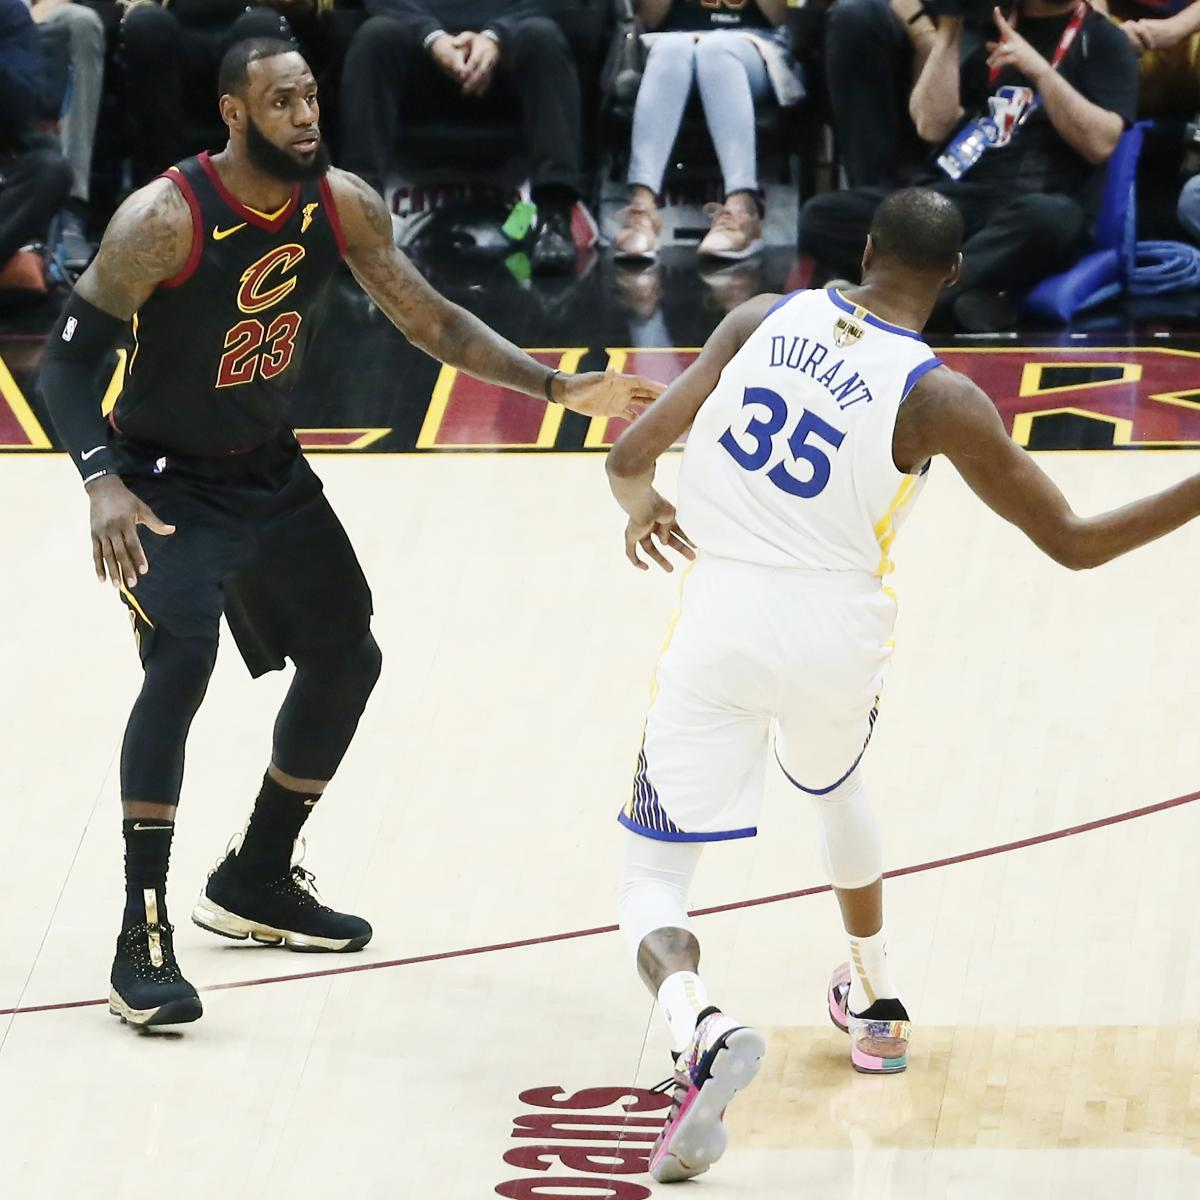 Zach Lowe: Kevin Durant Needs to Sign with Lakers to Even the Field for LeBron